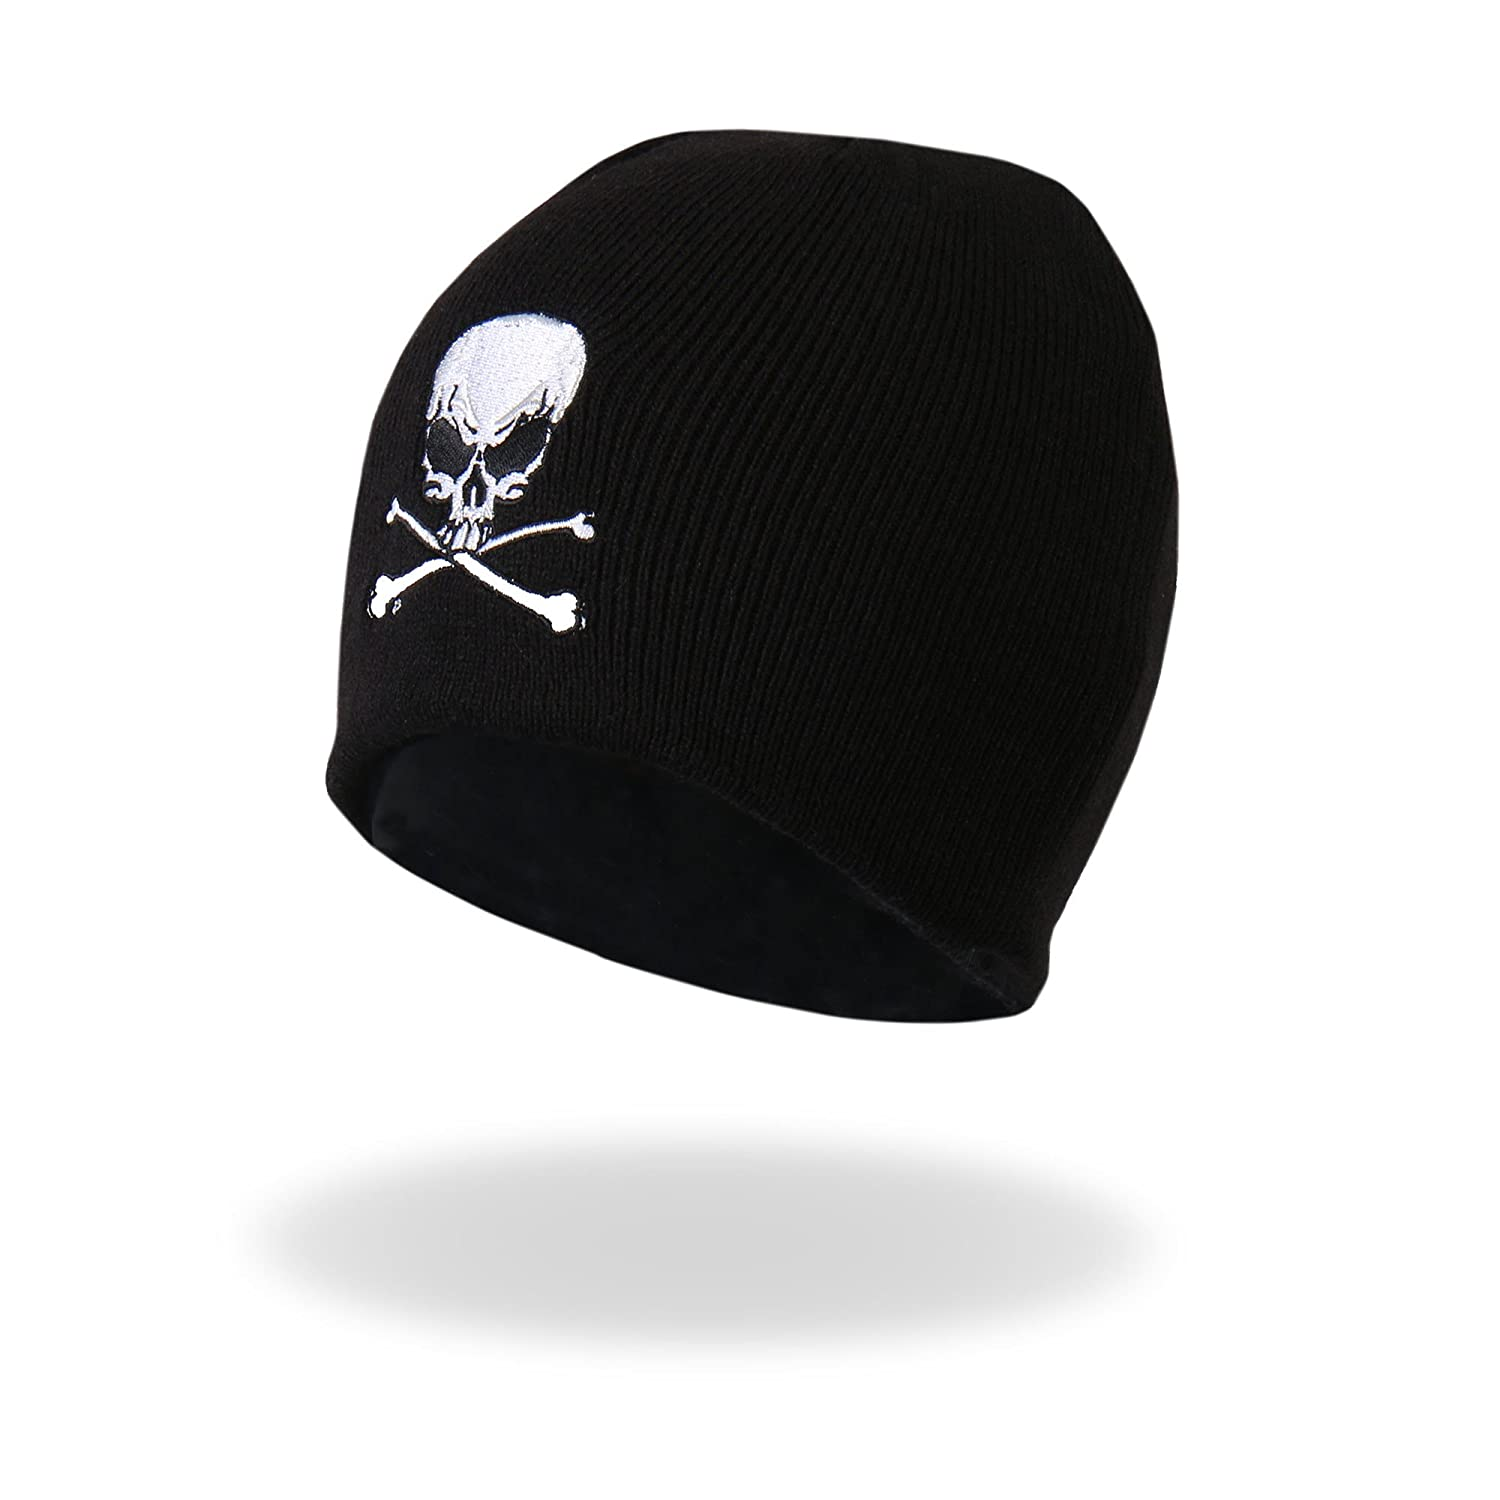 6e65e5da Soft and warm with plenty of stretch black knit beanie. One size fits all,  wear under helmet. Direct embroidered Skull and Crossbones design in white